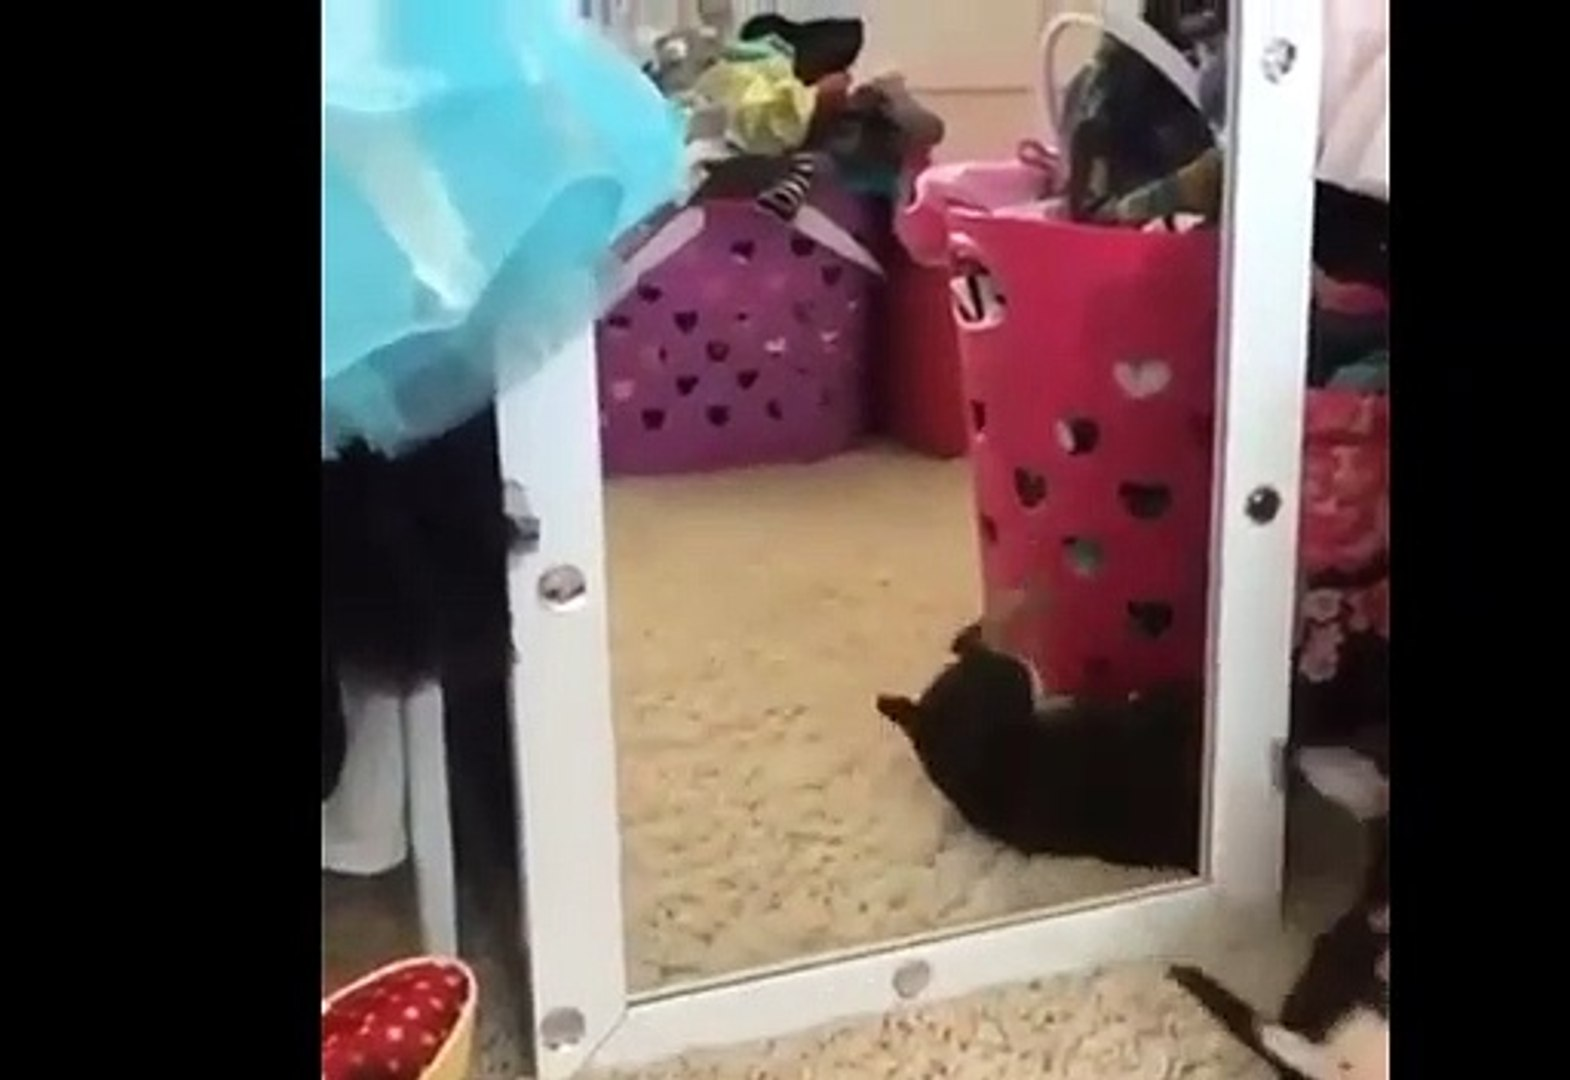 Dogs vs Mirrors  Compilation 2019 | Funny Animal Videos | Funny Dogs Videos 2019 Compilation